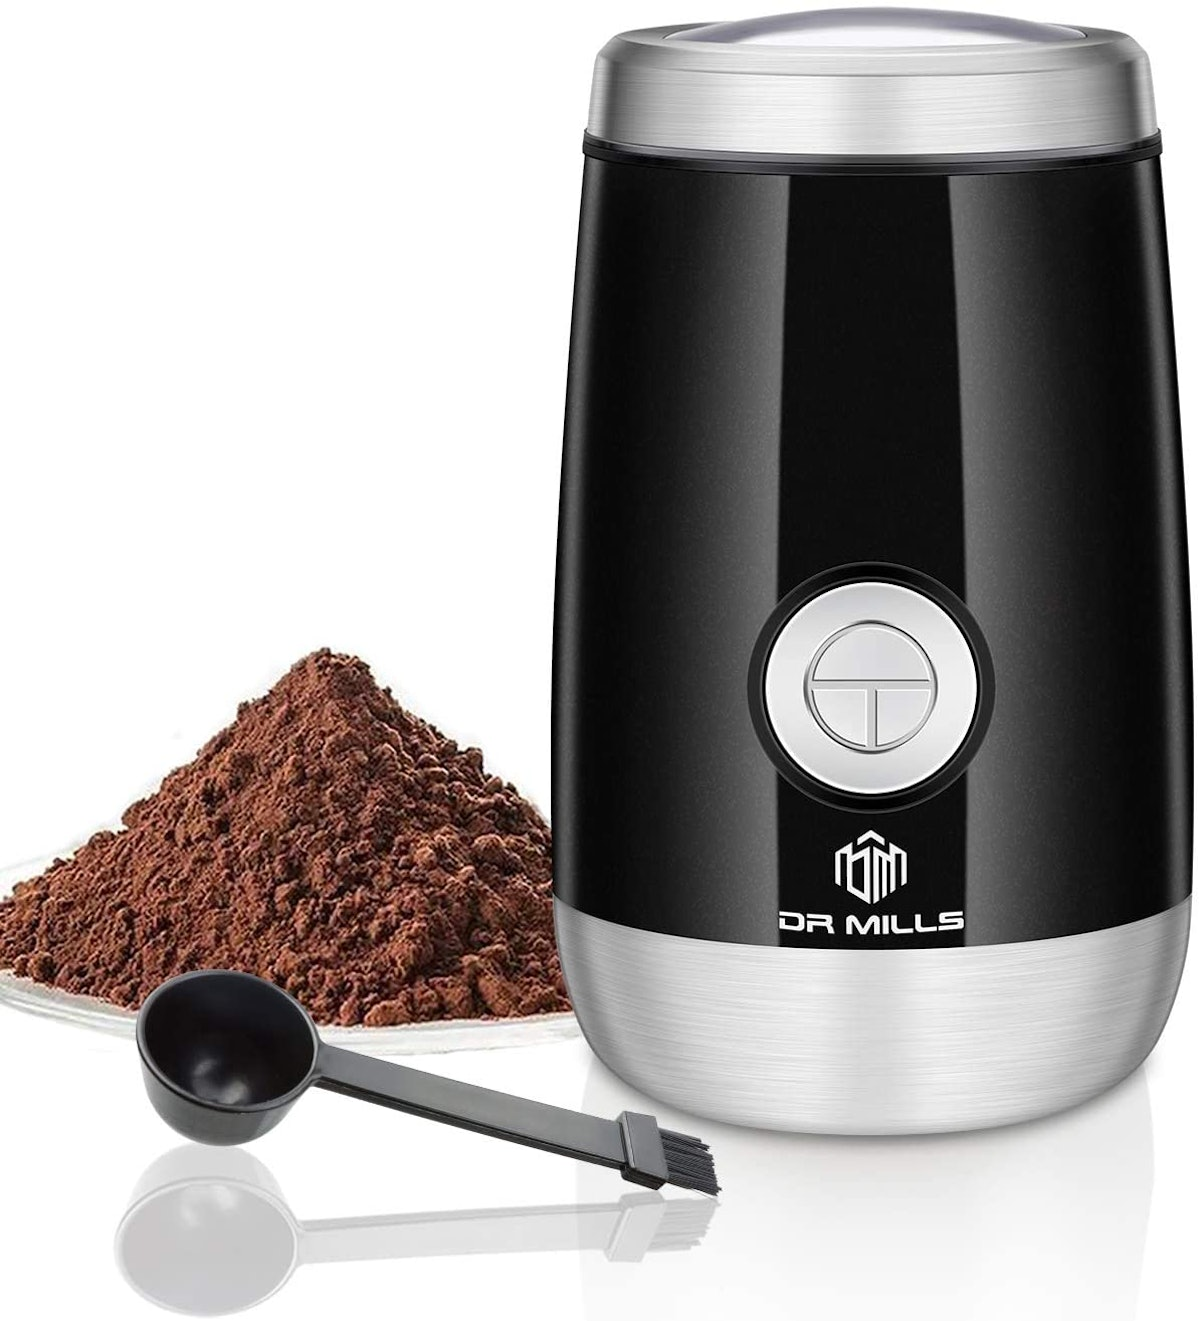 DR MILLS Electric Dried Spice and Coffee Grinder